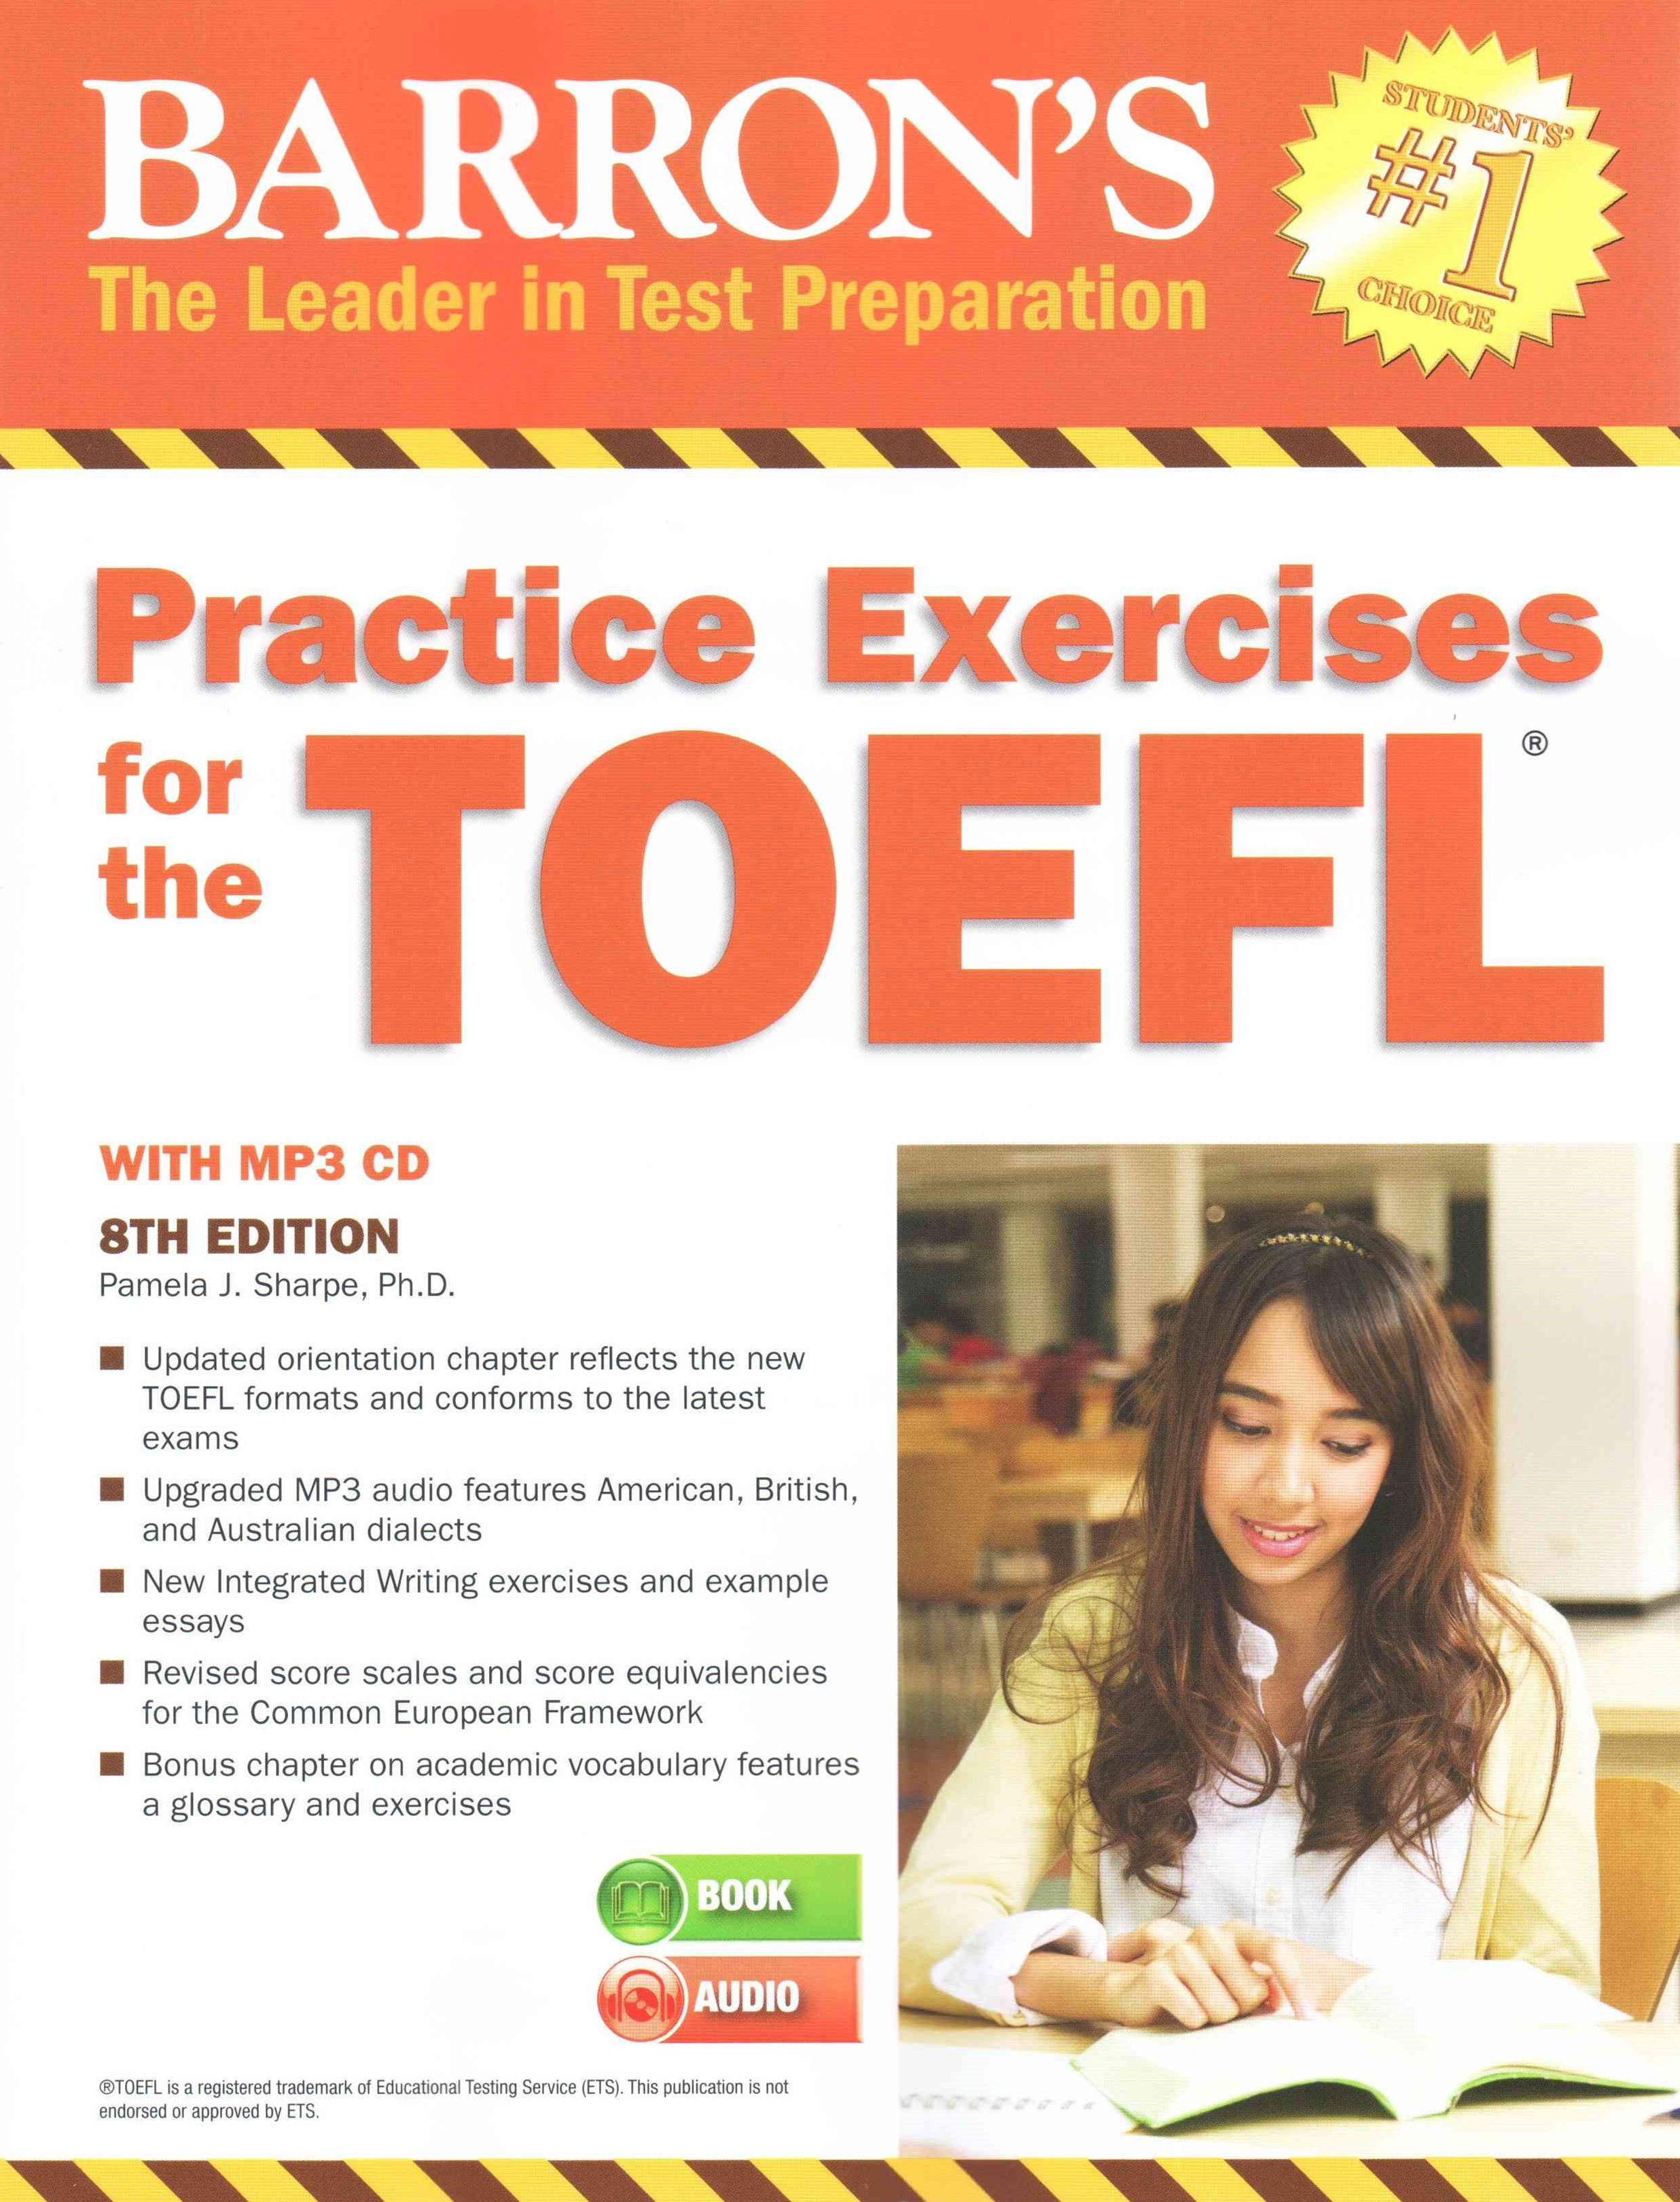 Practice Exercises for the TOEFL with MP3 CD, 8th Edition